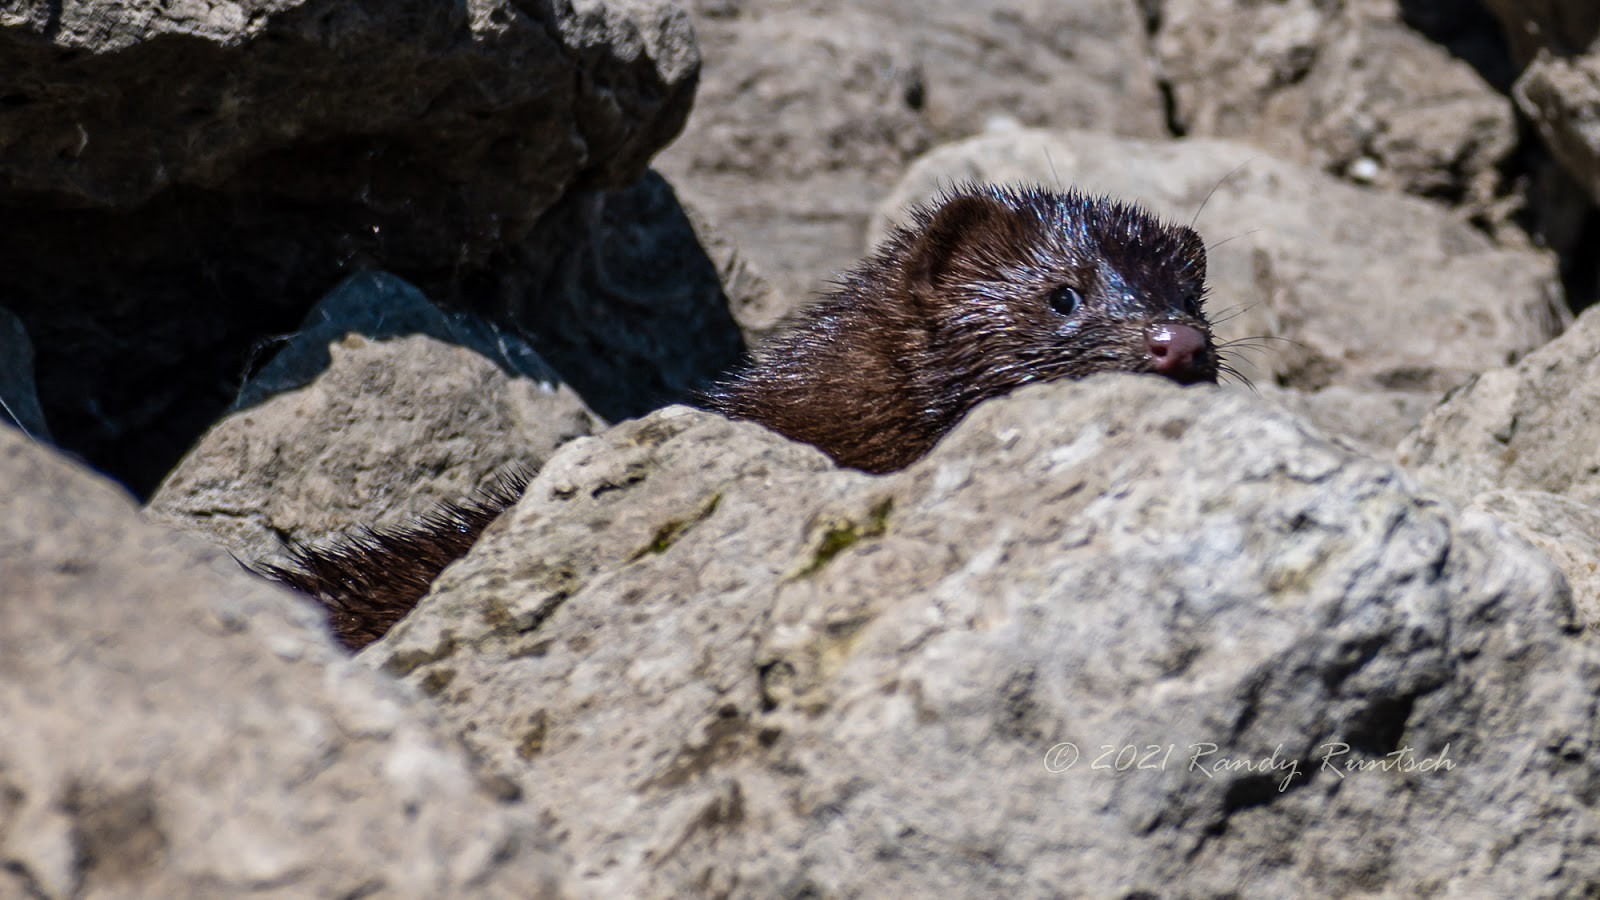 A mink peeks out from behind a rock. Photo by the author.